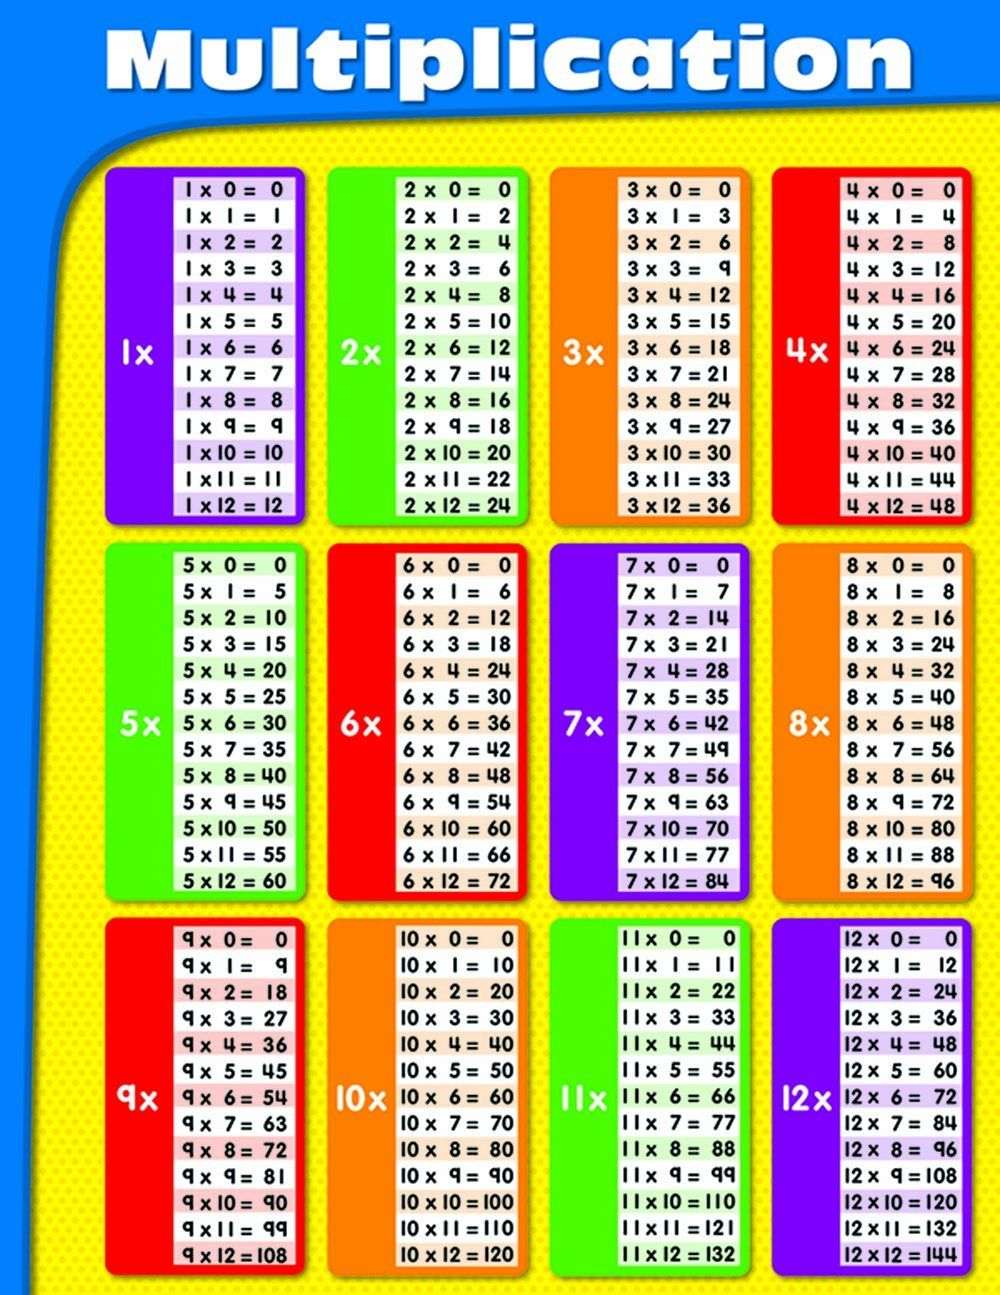 Amazon Com Carson Dellosa Multiplication Chart 114069 Times Tables The Fun Way Office Products Multiplication Chart Multiplication Table Multiplication